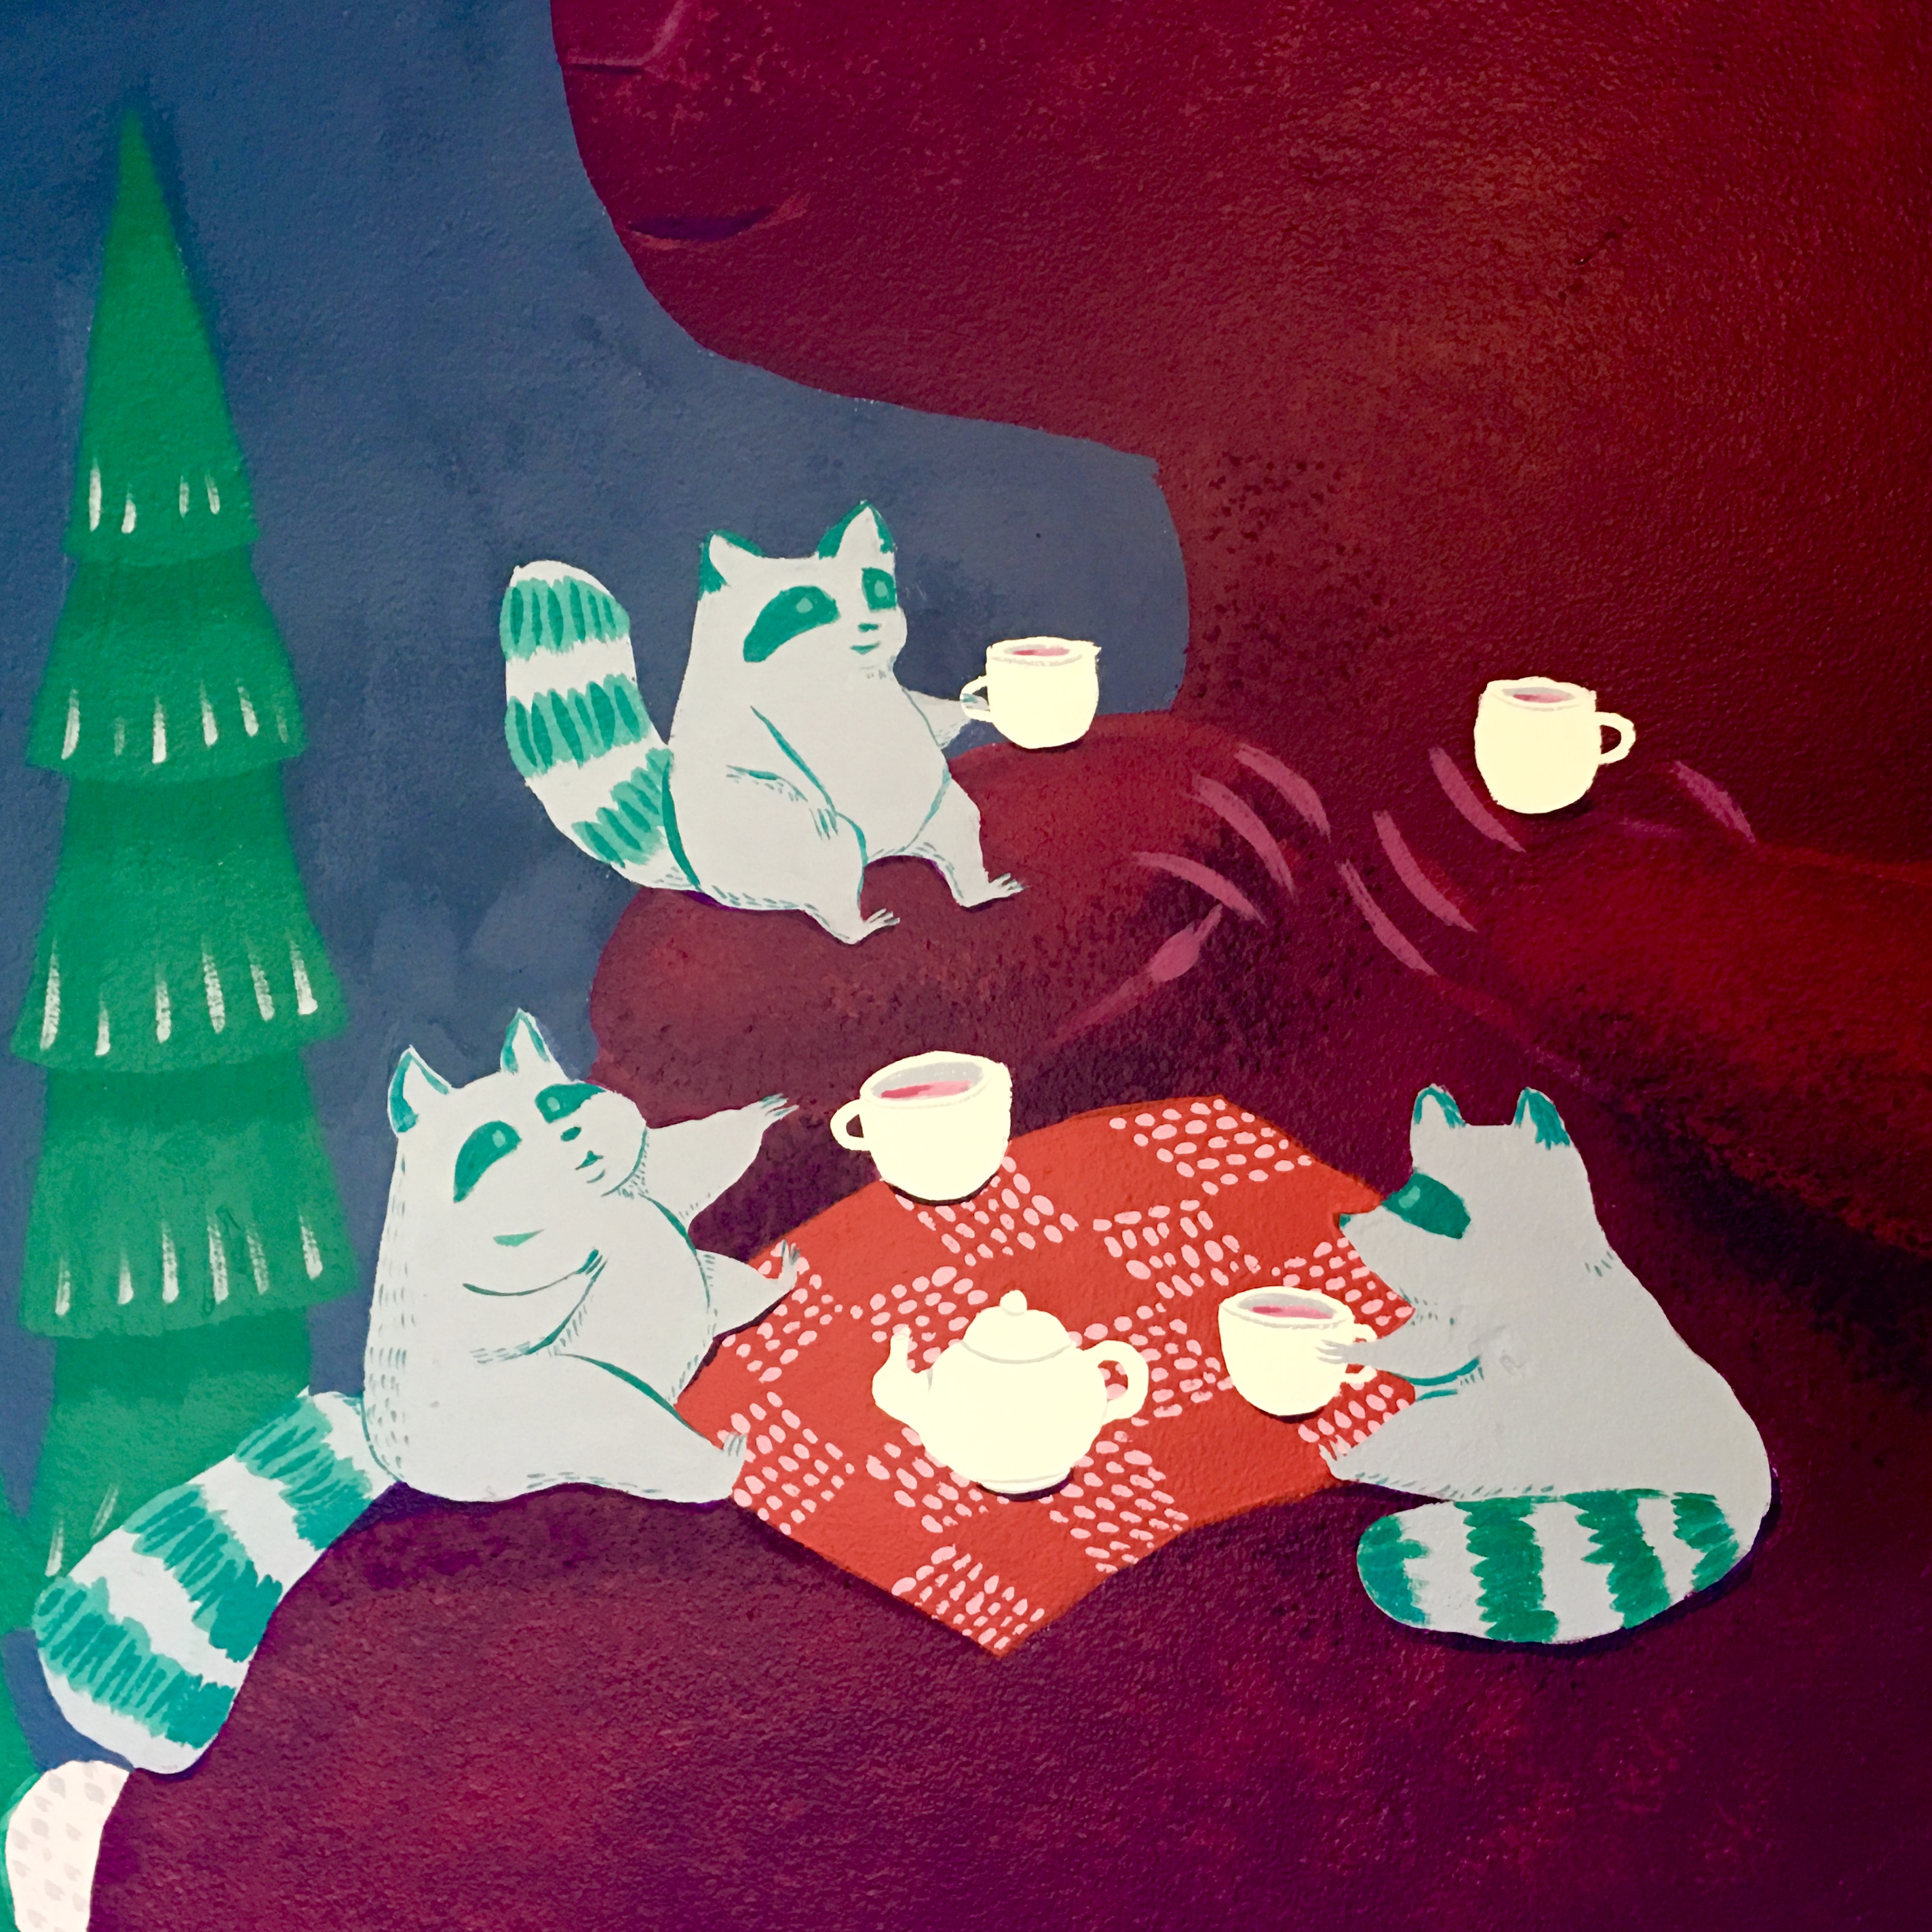 mural detail: raccoon tea party on the big bear's belly